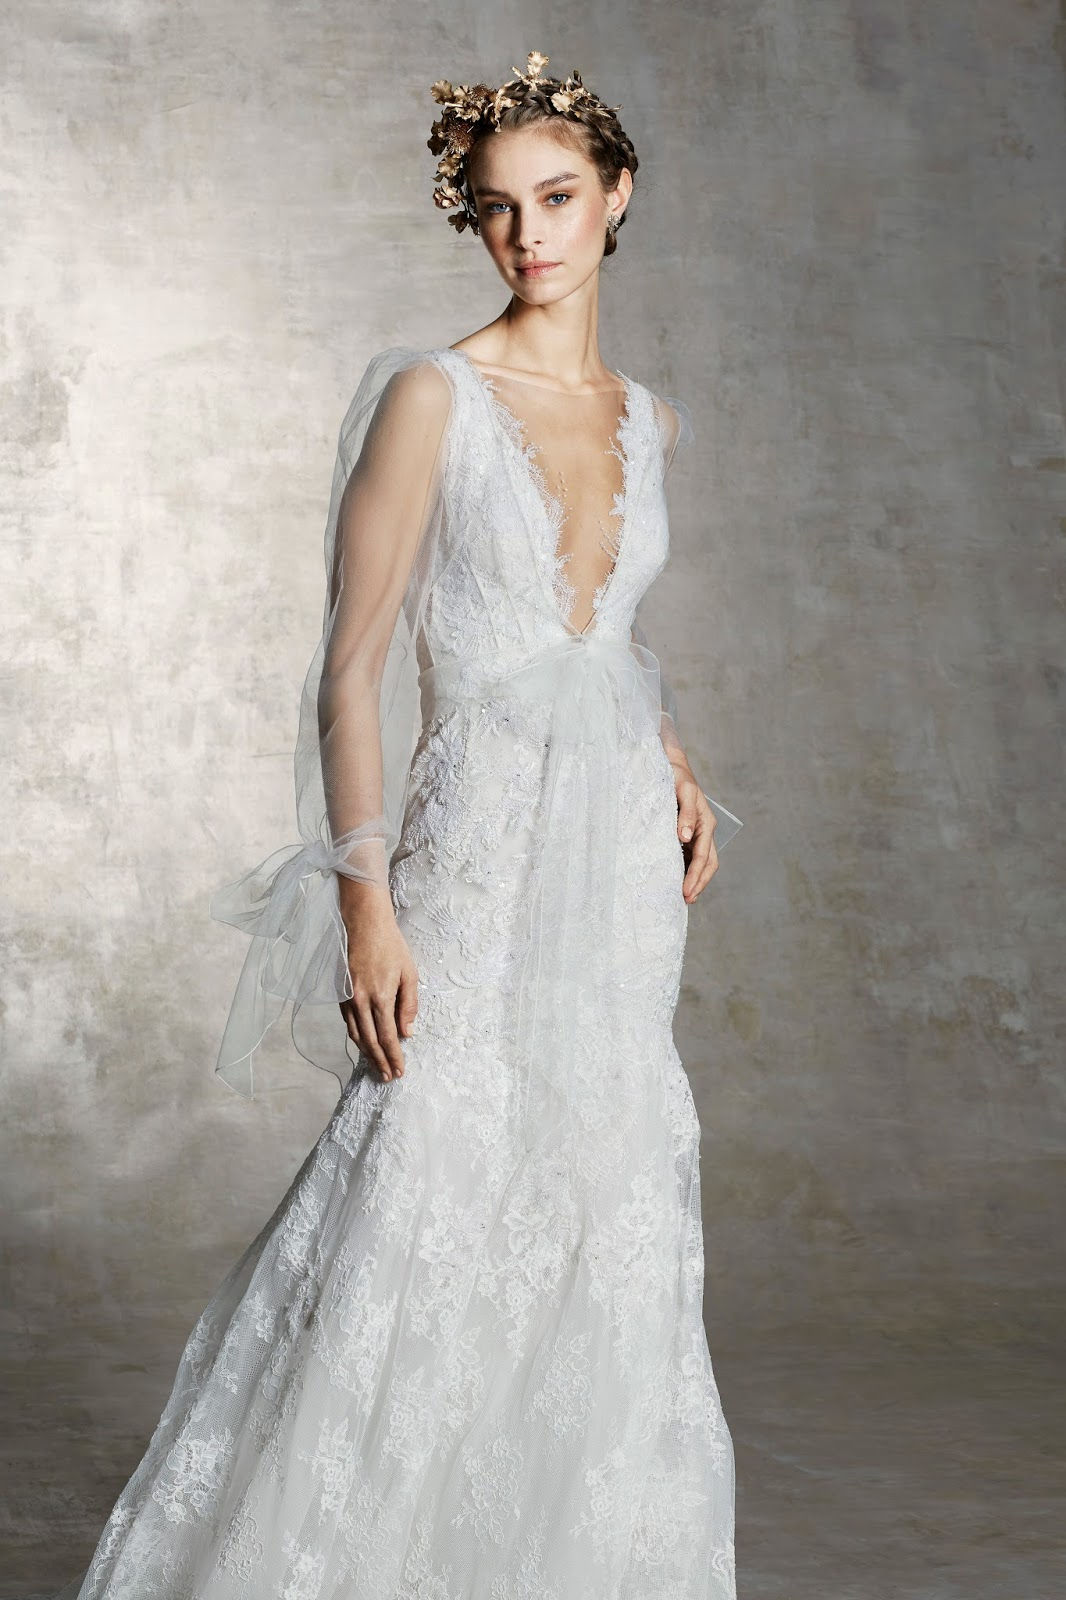 Mom\'s Turf: Gorgeous Bridal Gowns: Marchesa Bridal Spring 2019 ...